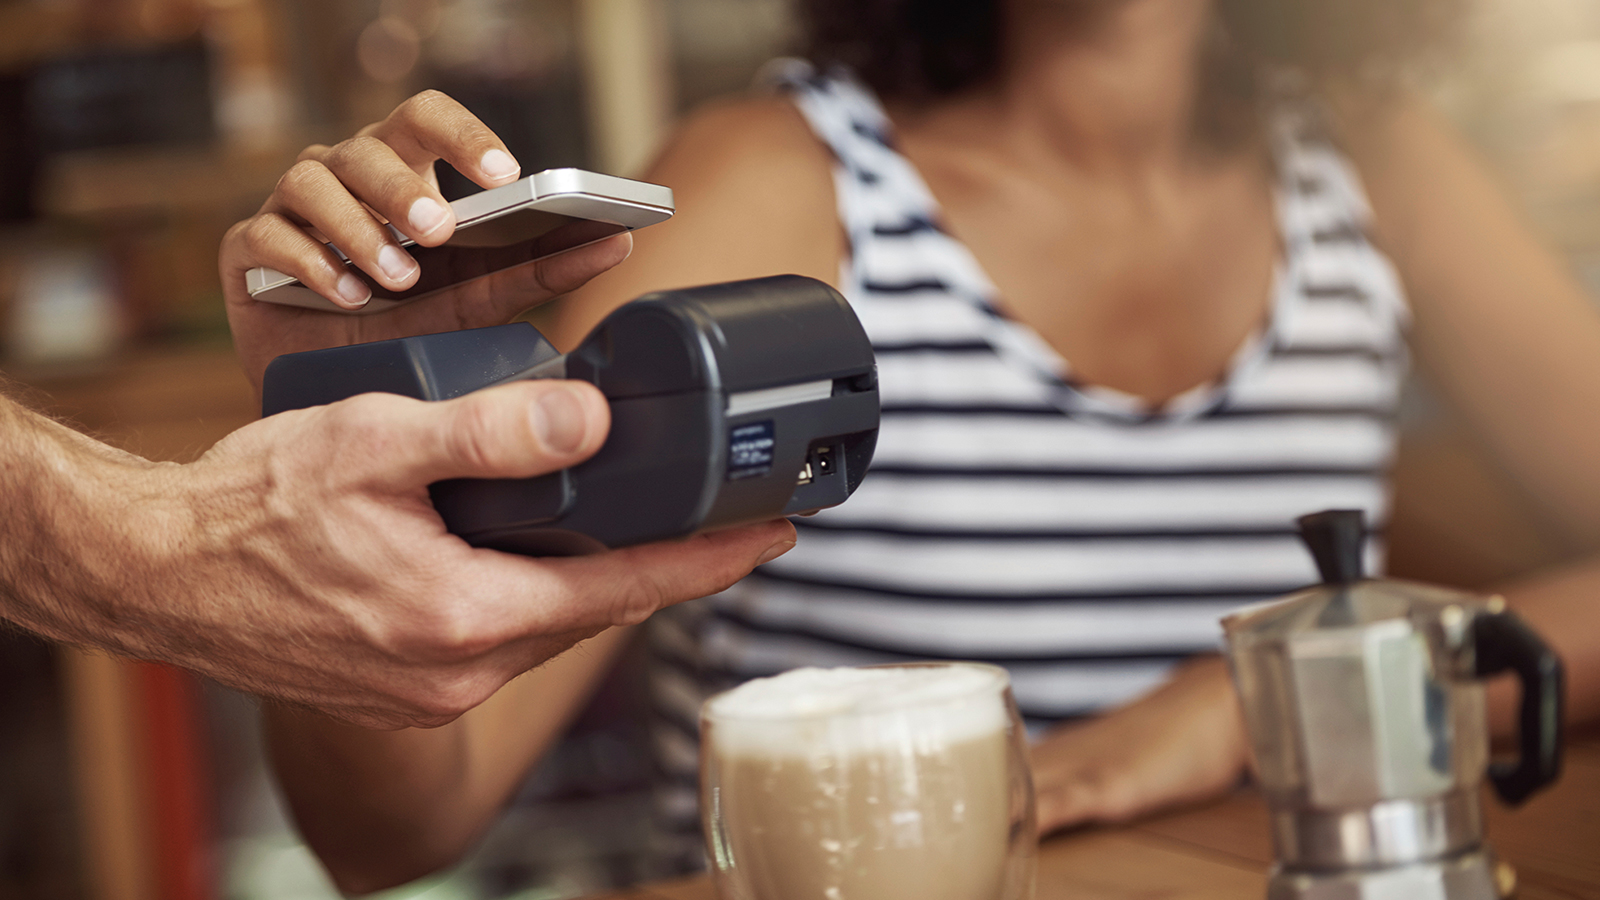 Contactless payment by mobile phone